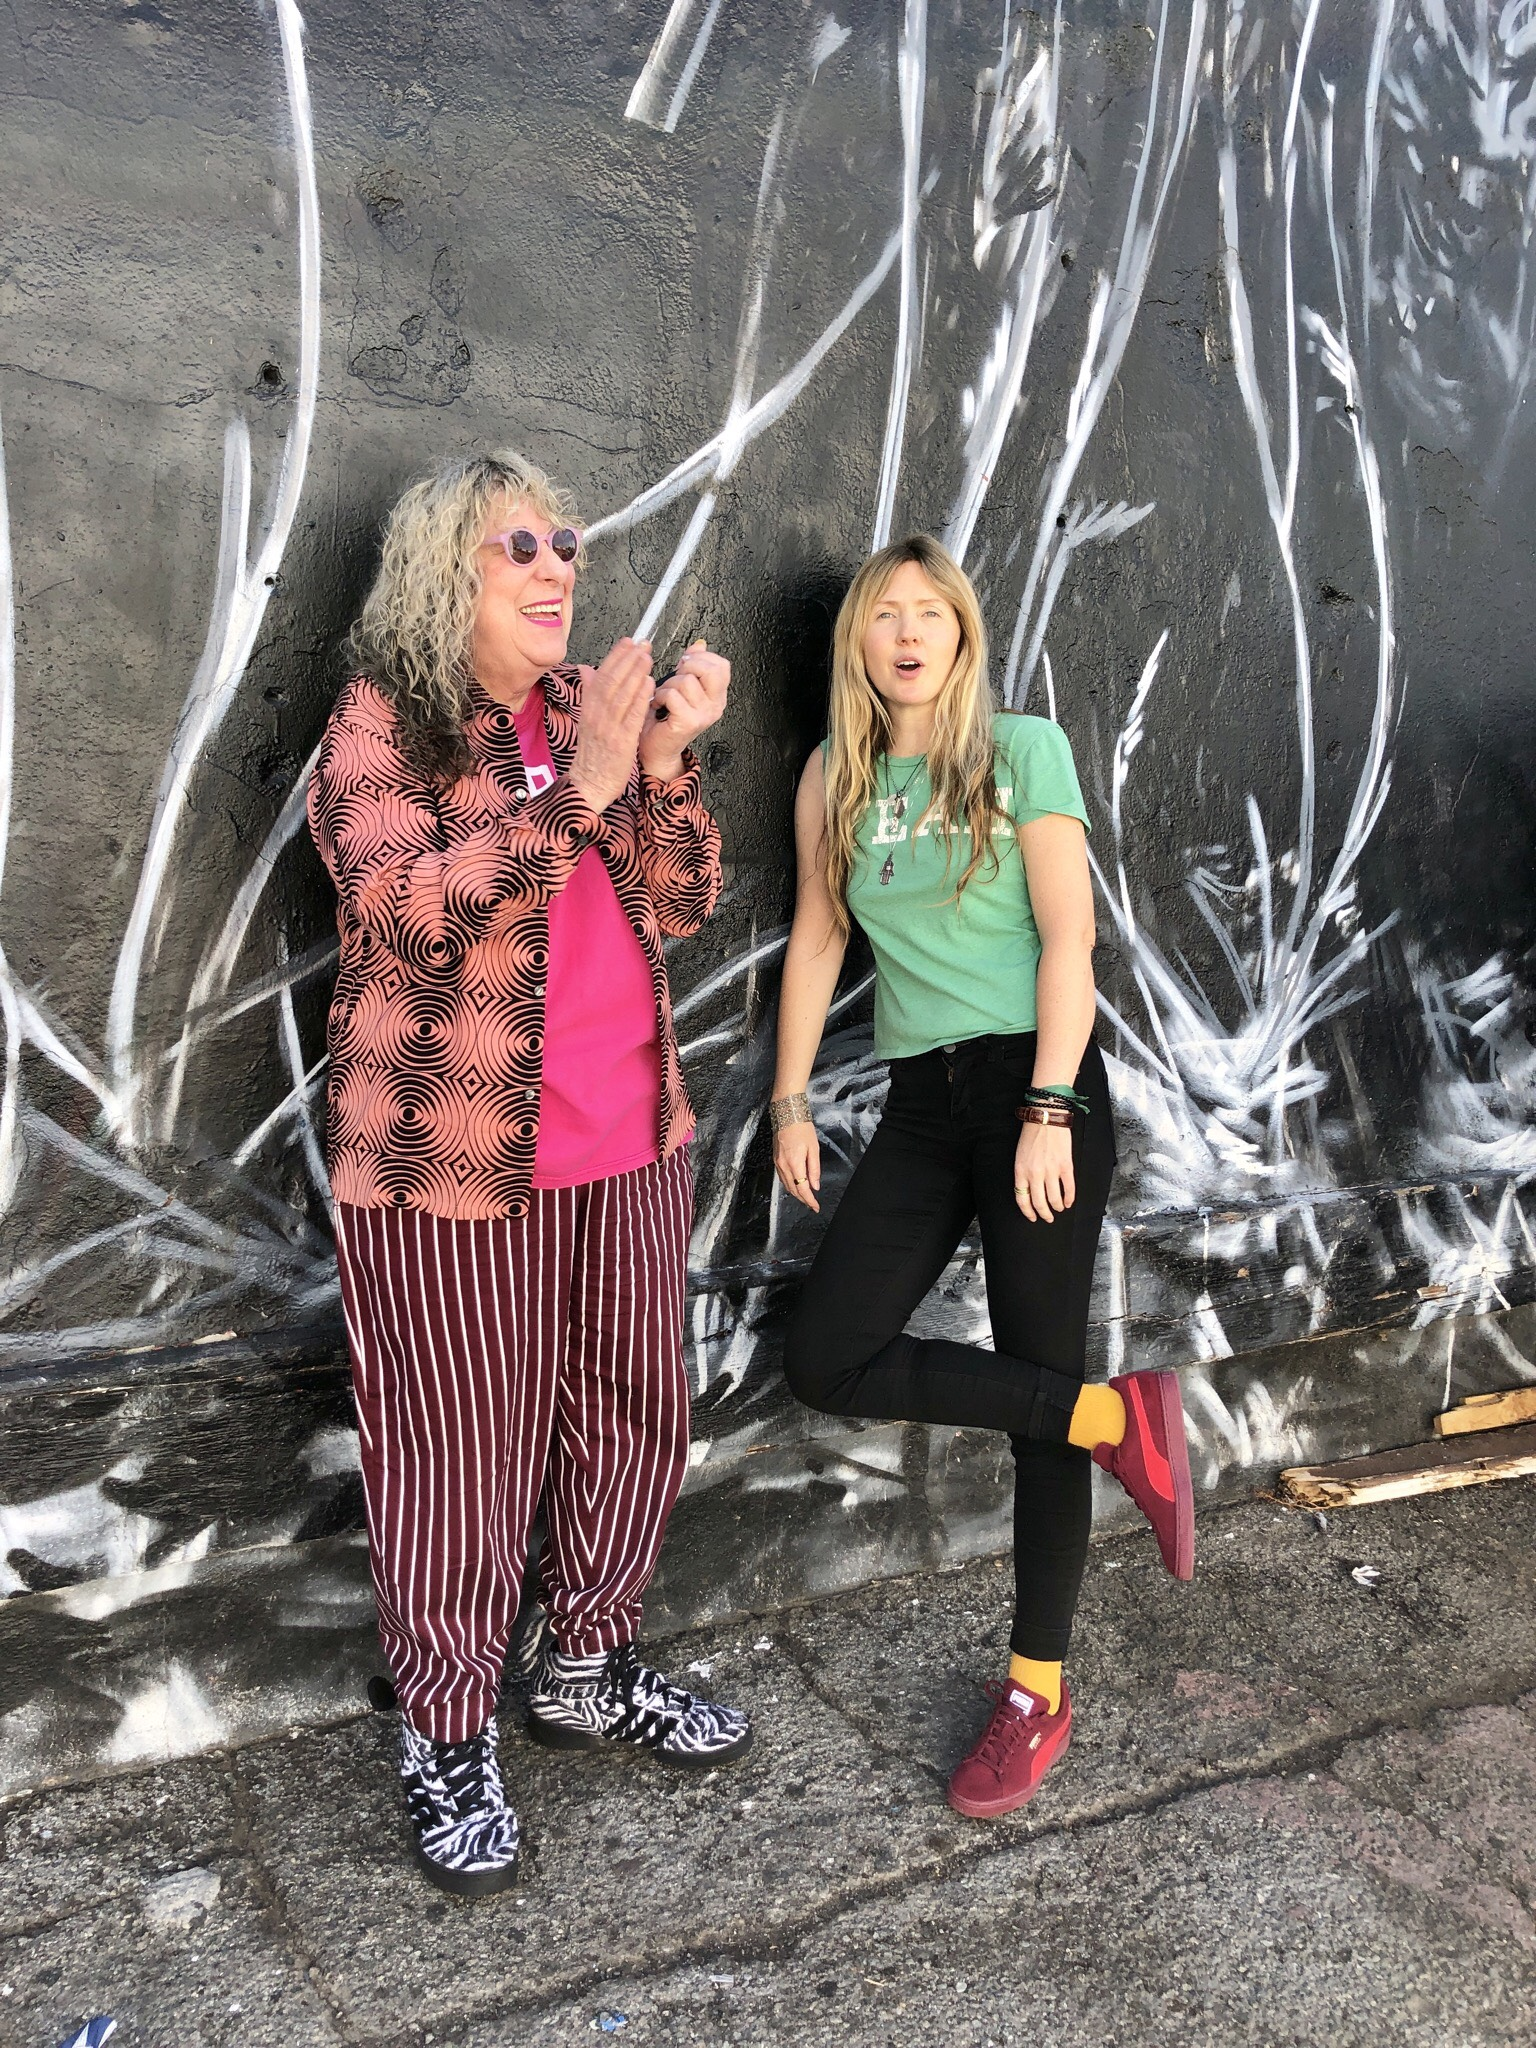 Beatie Wolfe with Allee Willis outside dublab radio after their show